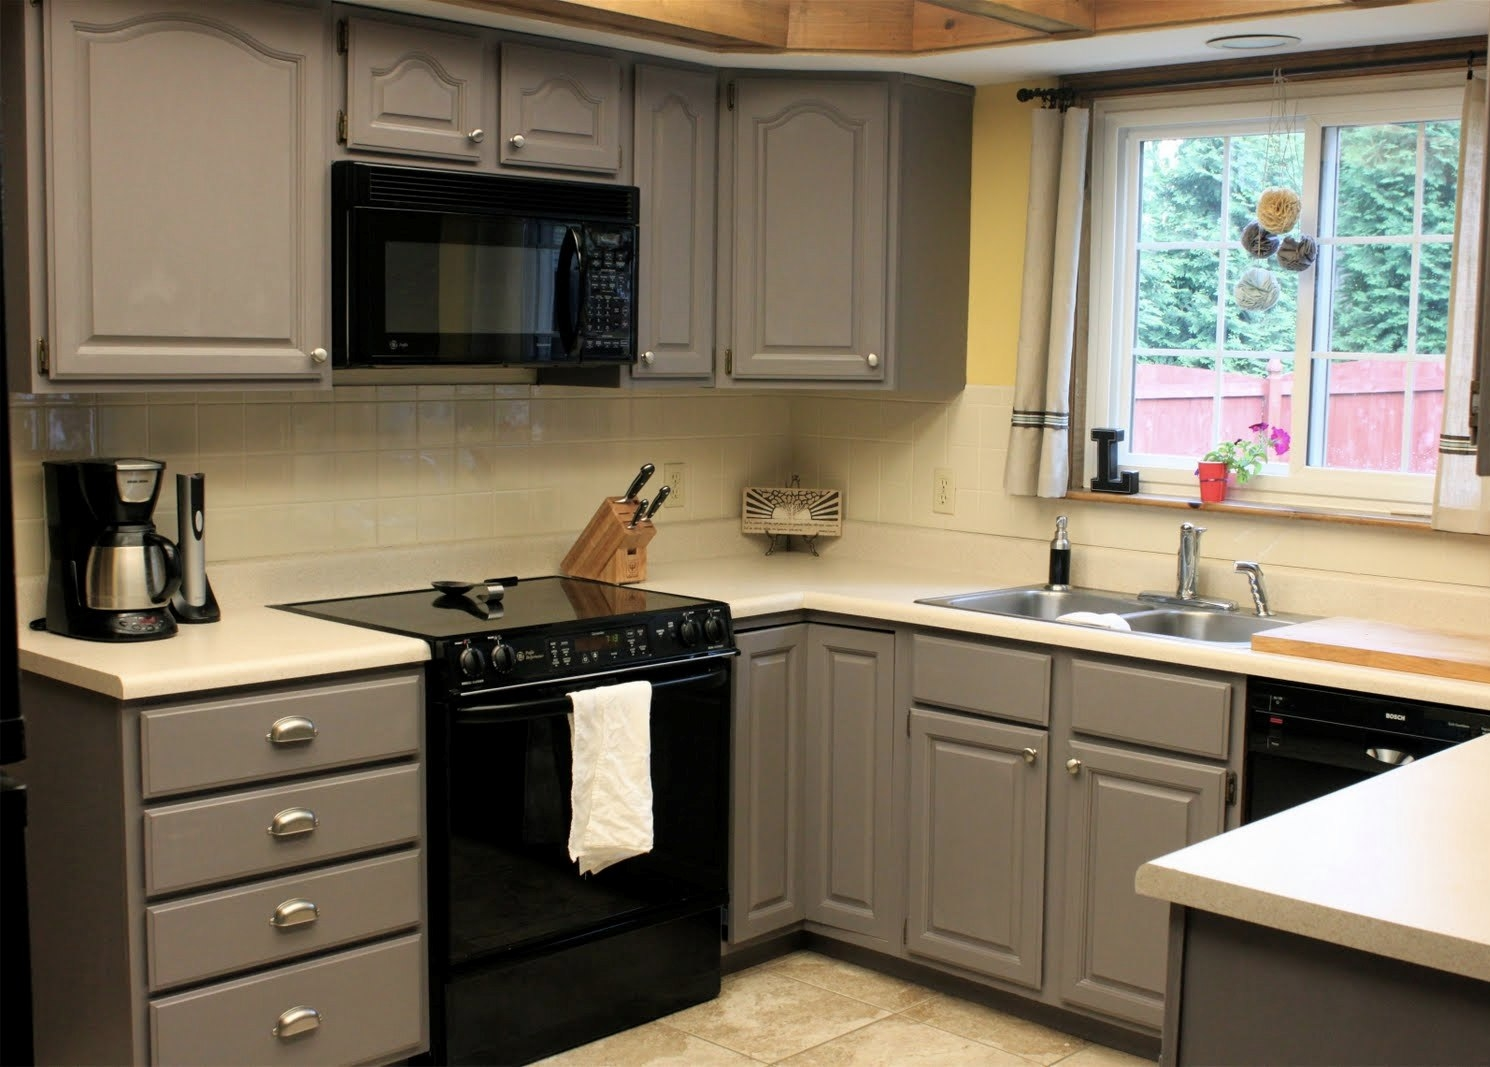 Kitchen Cabinet Remodel Pictures1490 X 1067